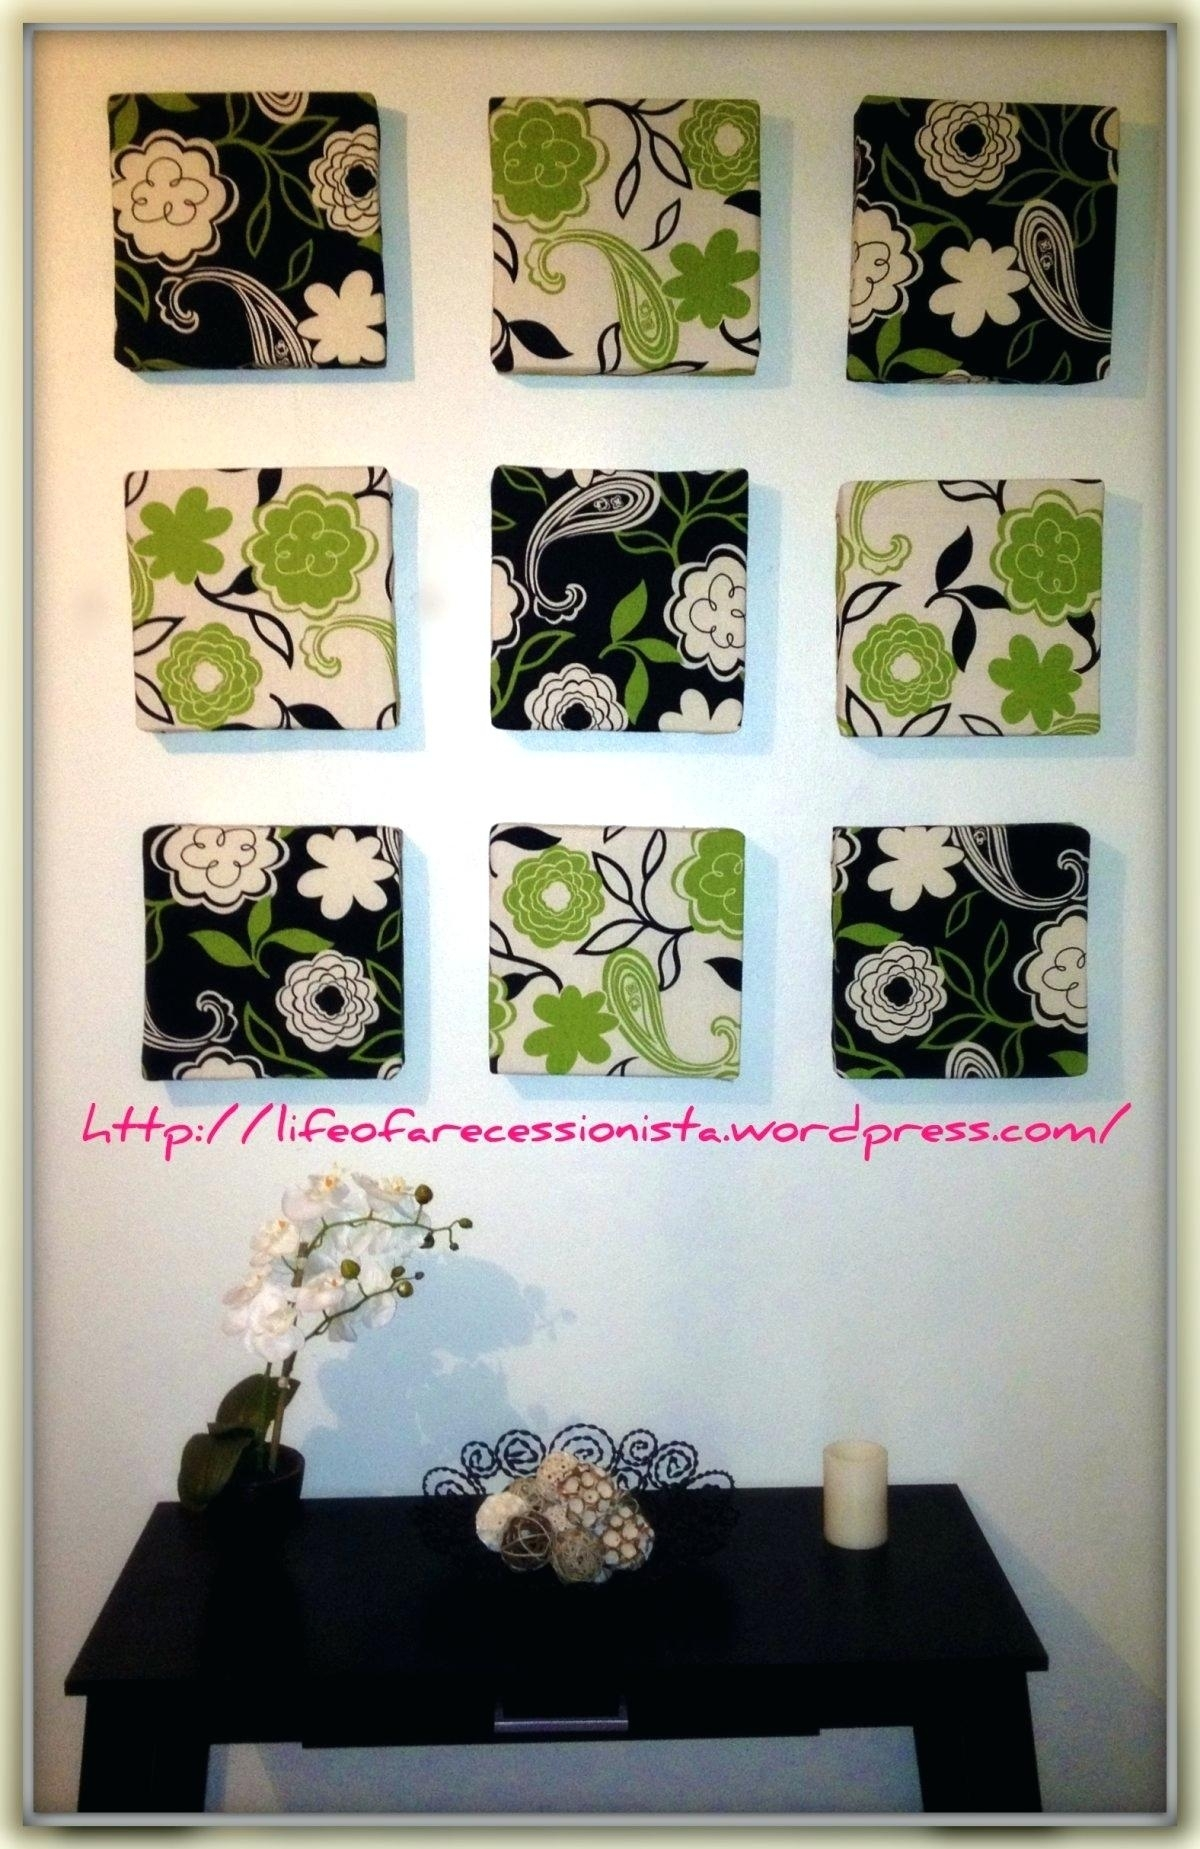 Decoration: Framed Fabric Wall Art Arts Frames Picture Frame Ideas In 2018 Diy Framed Fabric Wall Art (View 1 of 15)